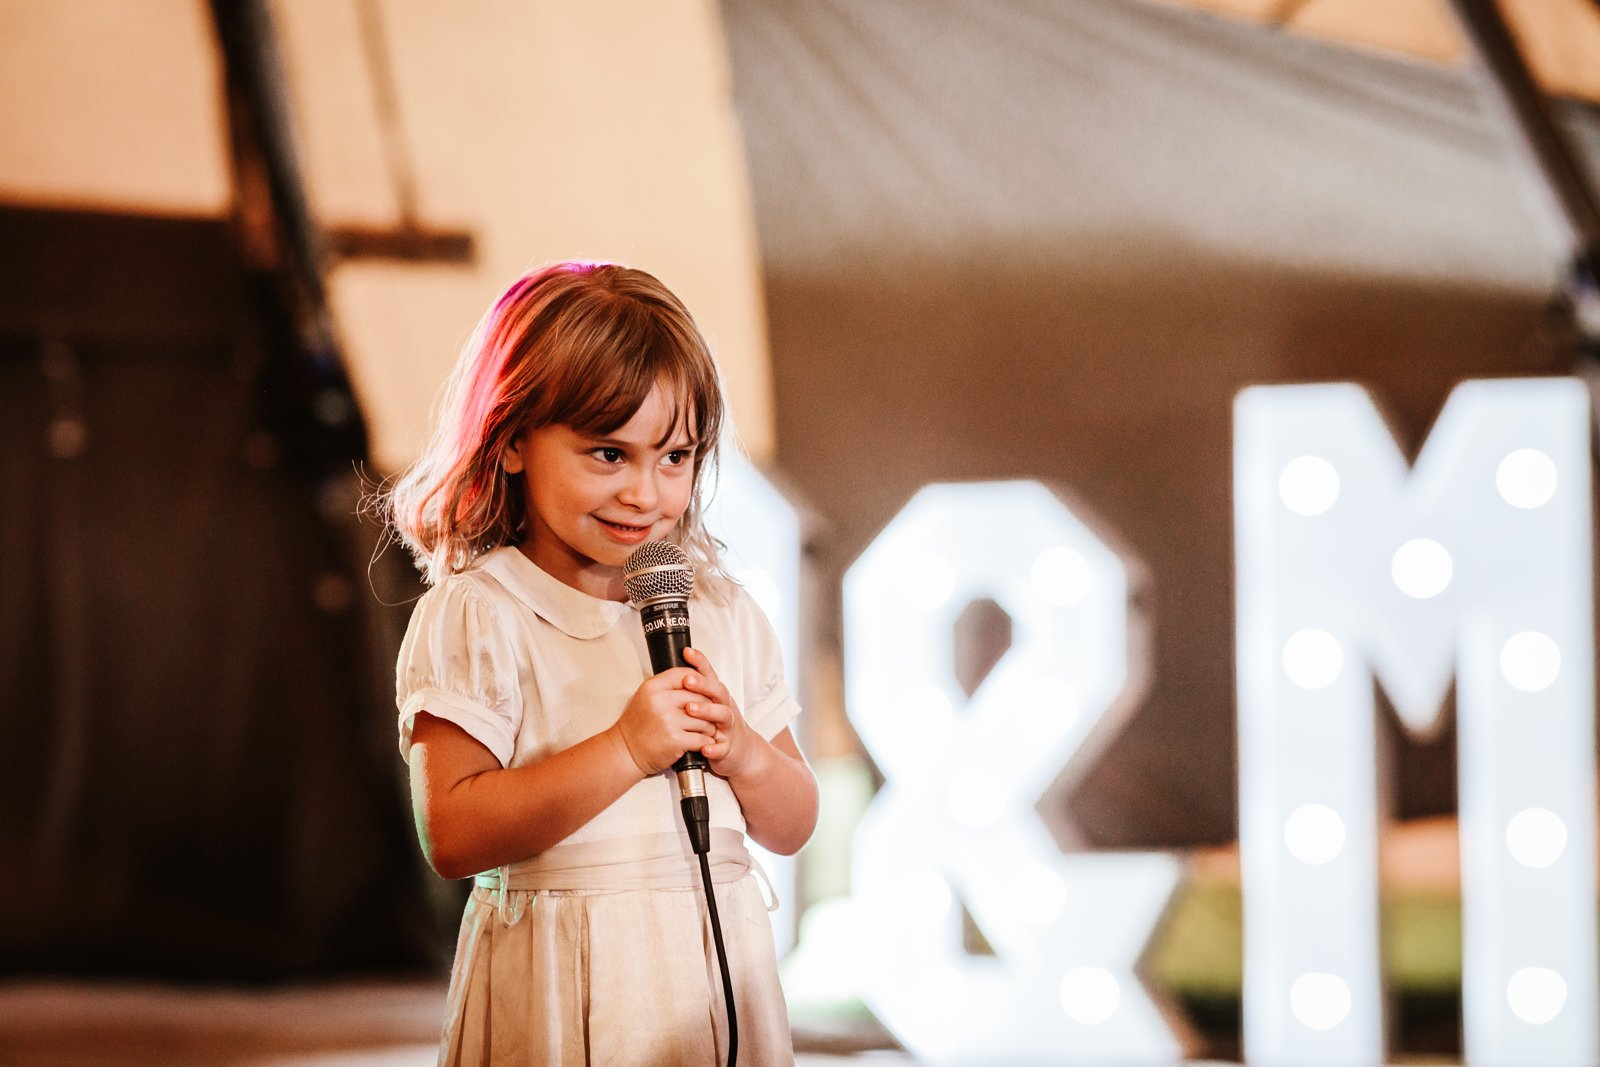 Flower girl gives speech